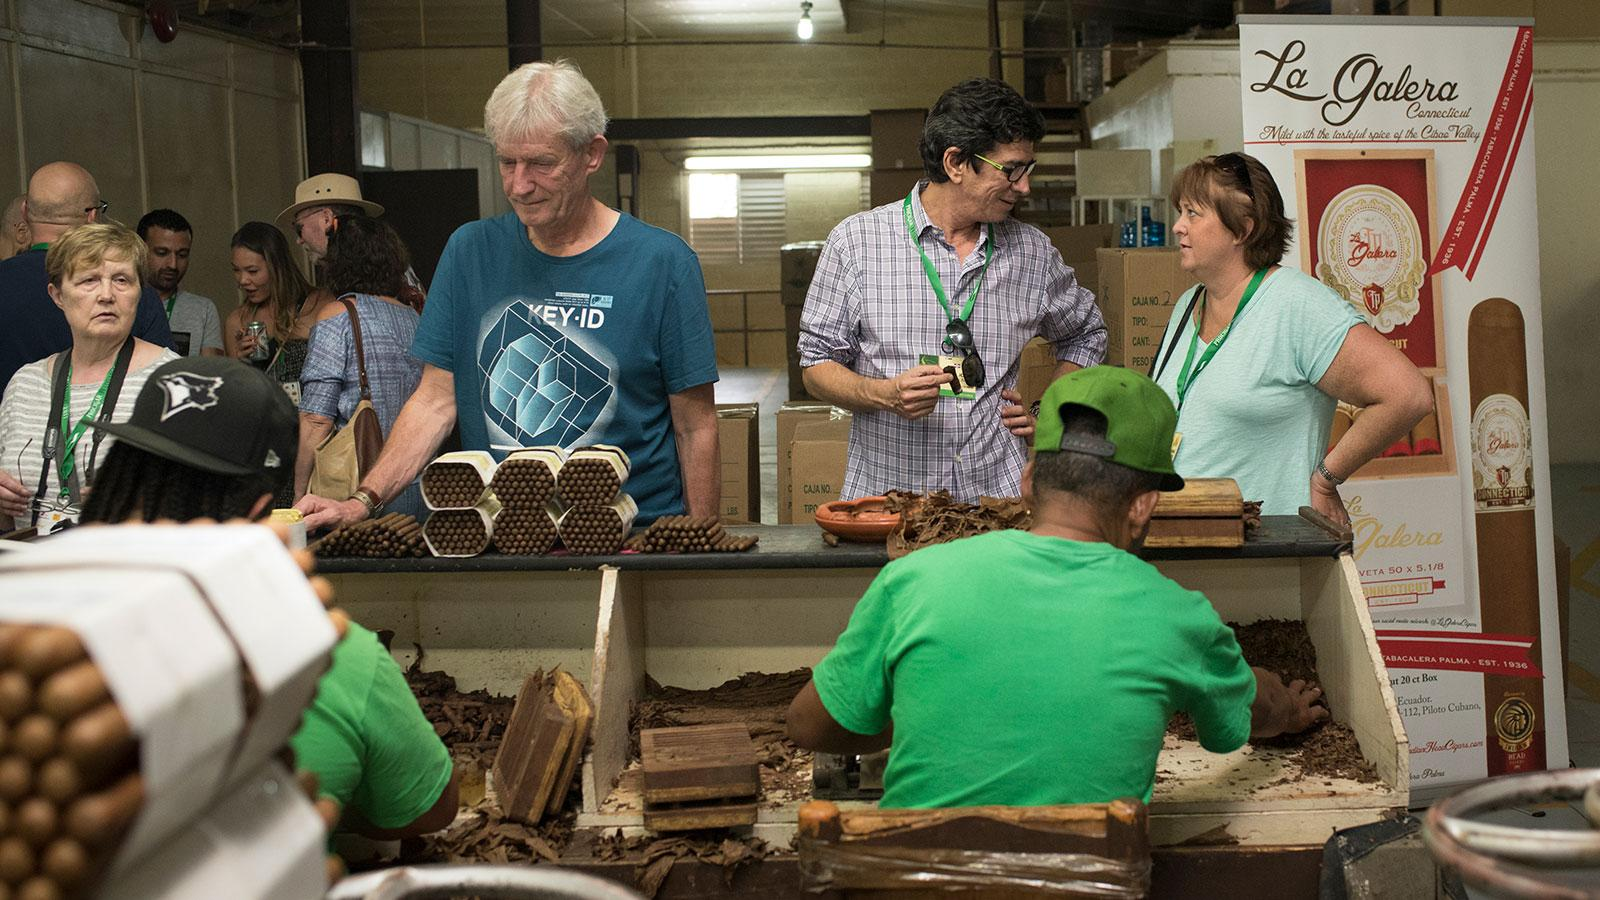 Guests visit the La Galera cigar factory in the Dominican Republic during last year's ProCigar Festival.